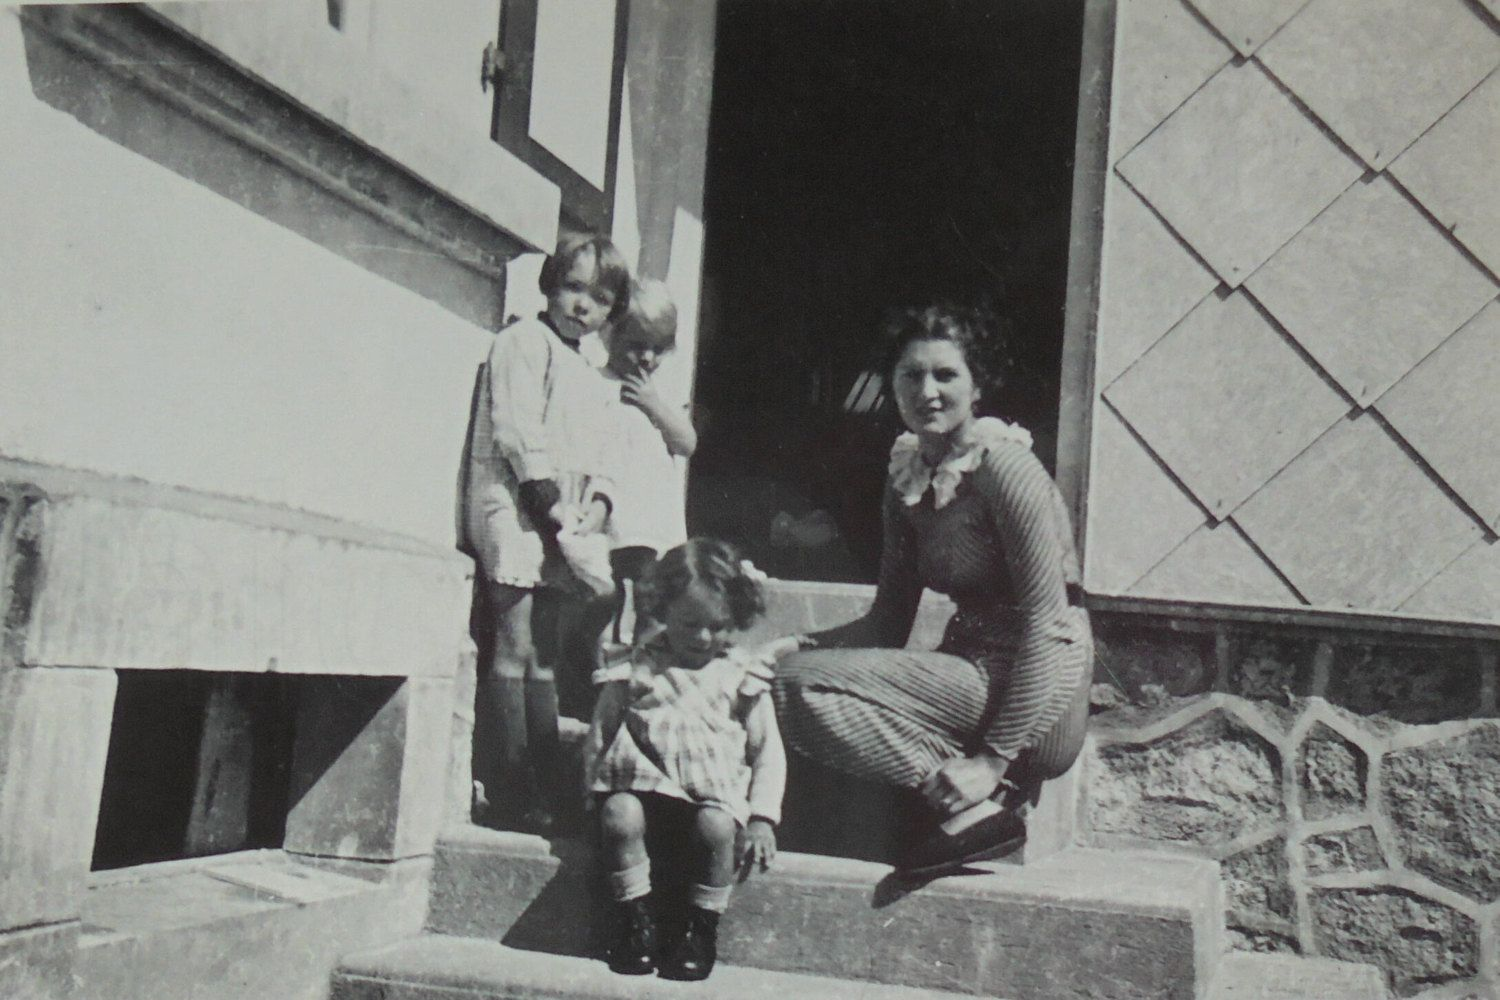 French 1930's Photograph - Woman with Children on the Doorstep by ChicEtChoc on Etsy